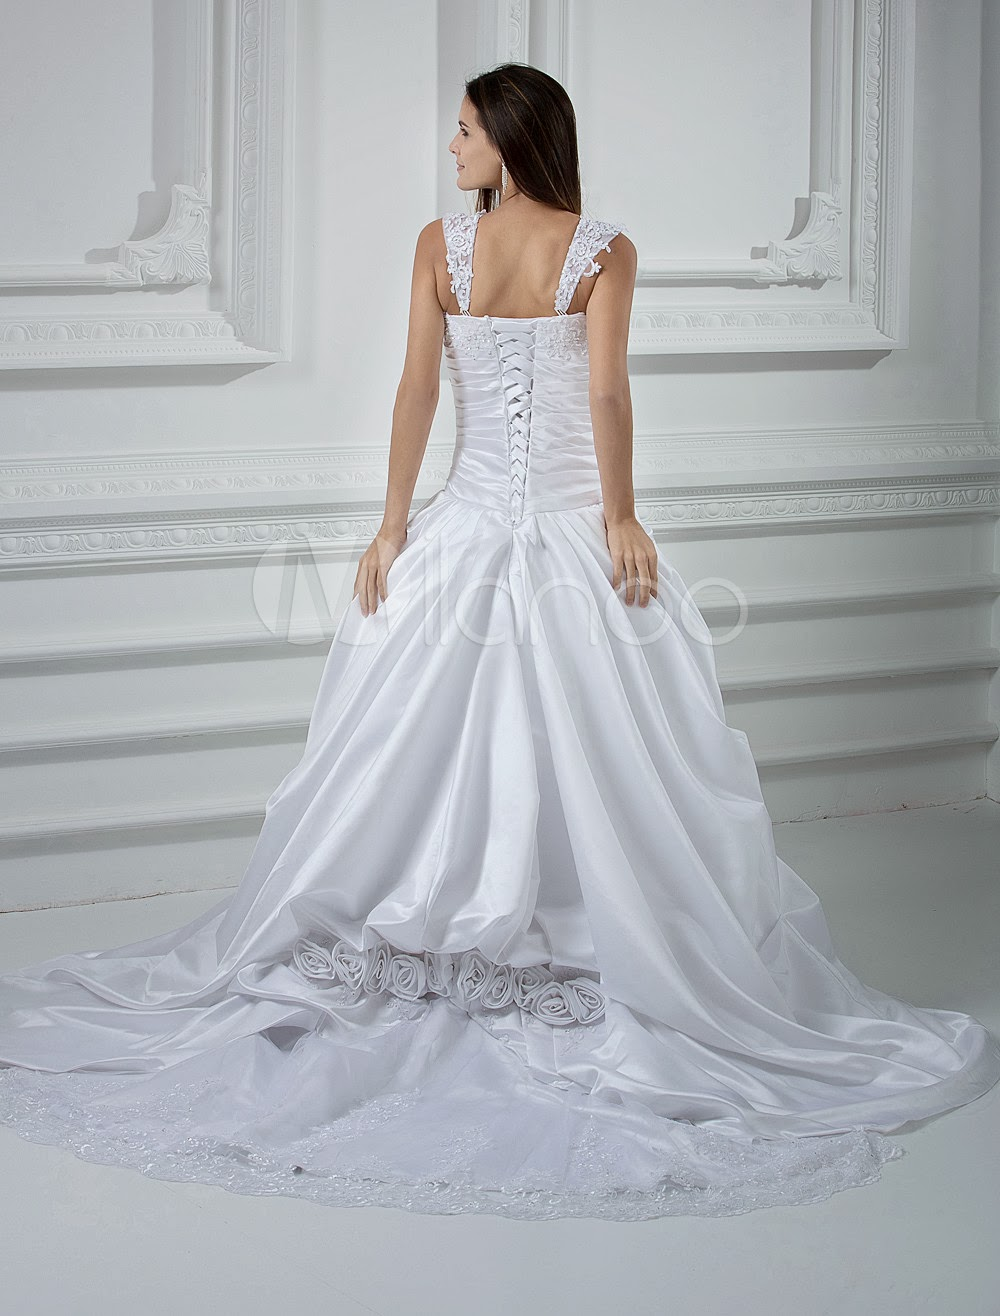 China Wholesale Dresses - Lace White A-line Sweetheart Beading Applique Satin Luxury Wedding Dress